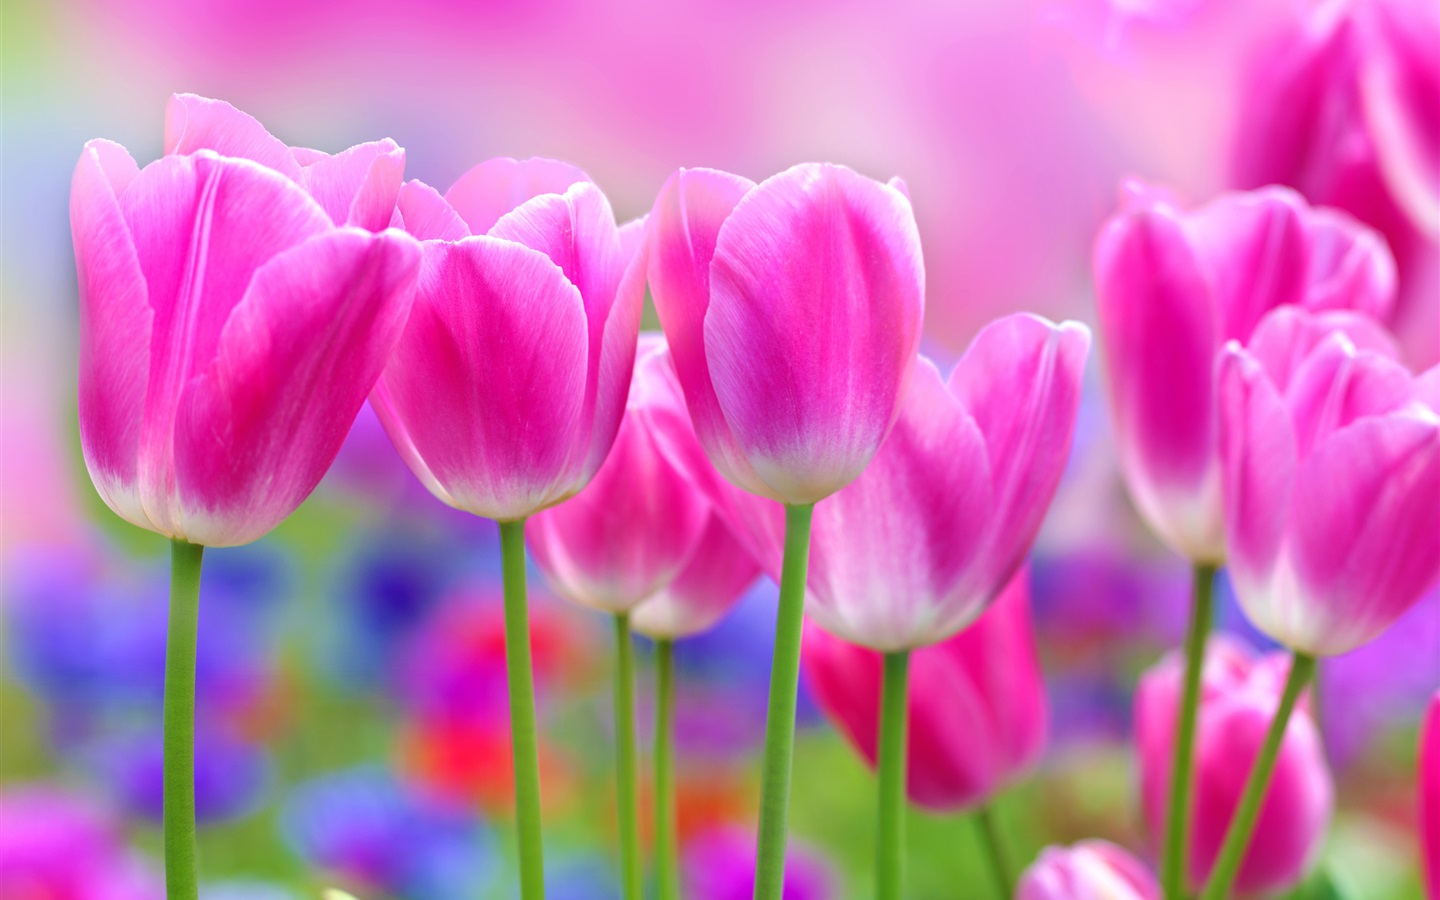 https://ru.best-wallpaper.net/wallpaper/1440x900/1403/Beautiful-pink-tulips-flowers-blur-background_1440x900.jpg